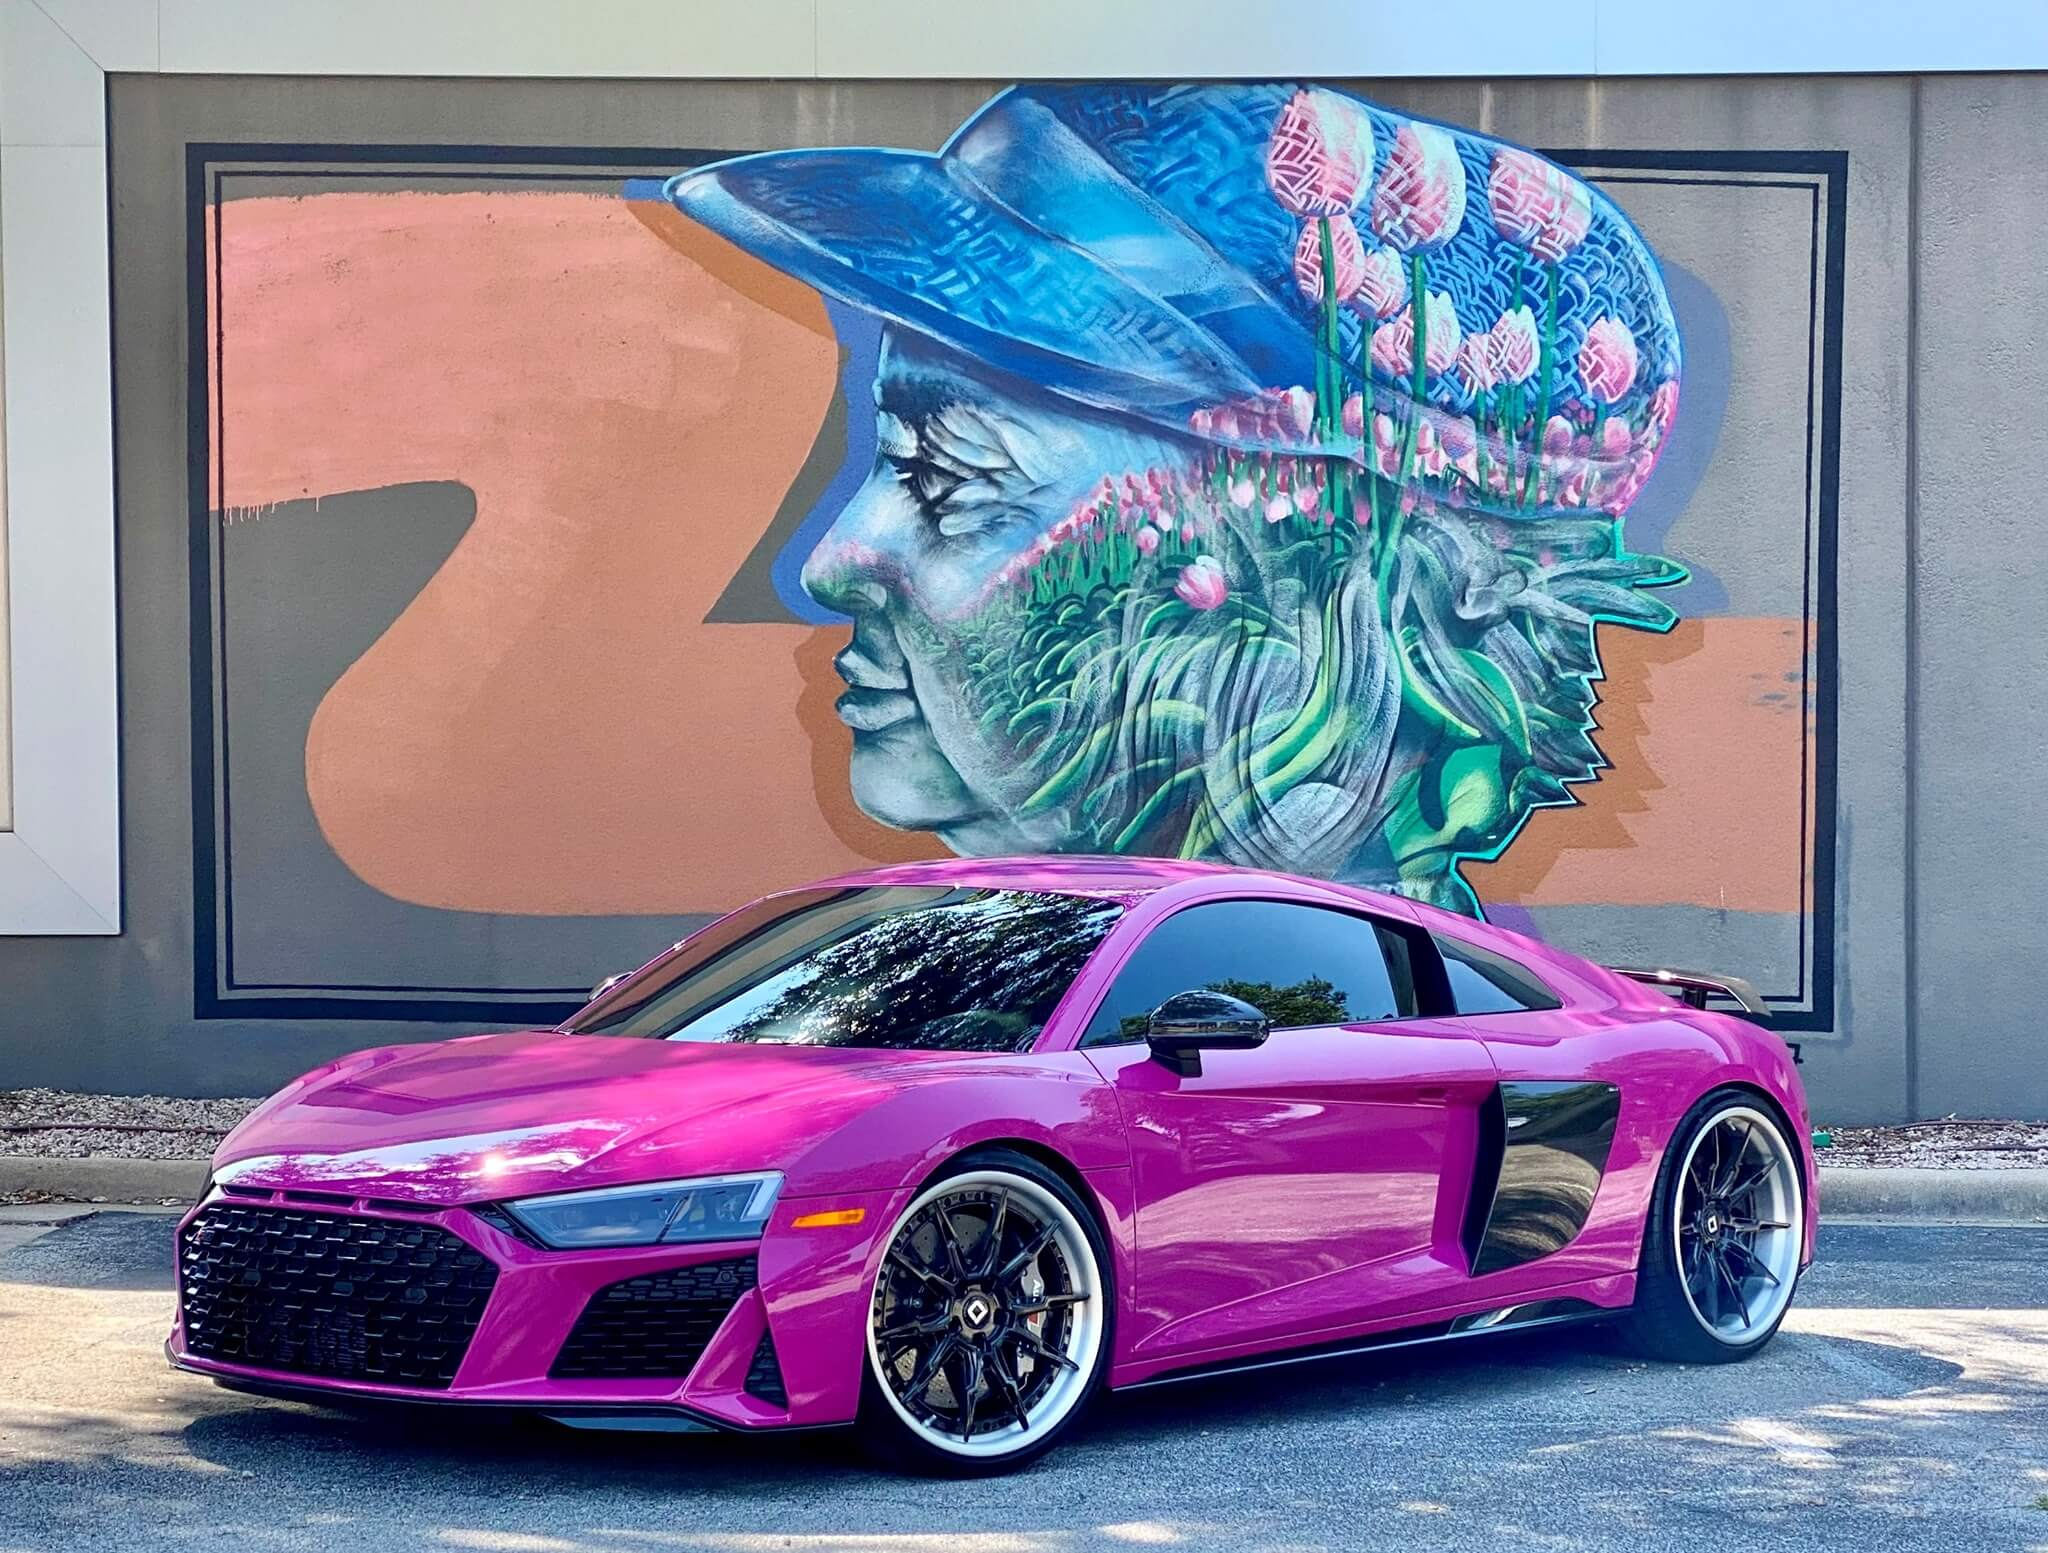 Traffic Purple 2020 Audi R8 Preserves Limited-Edition Paint with XPEL ULTIMATE PLUS PPF and FUSION PLUS Ceramic Coating